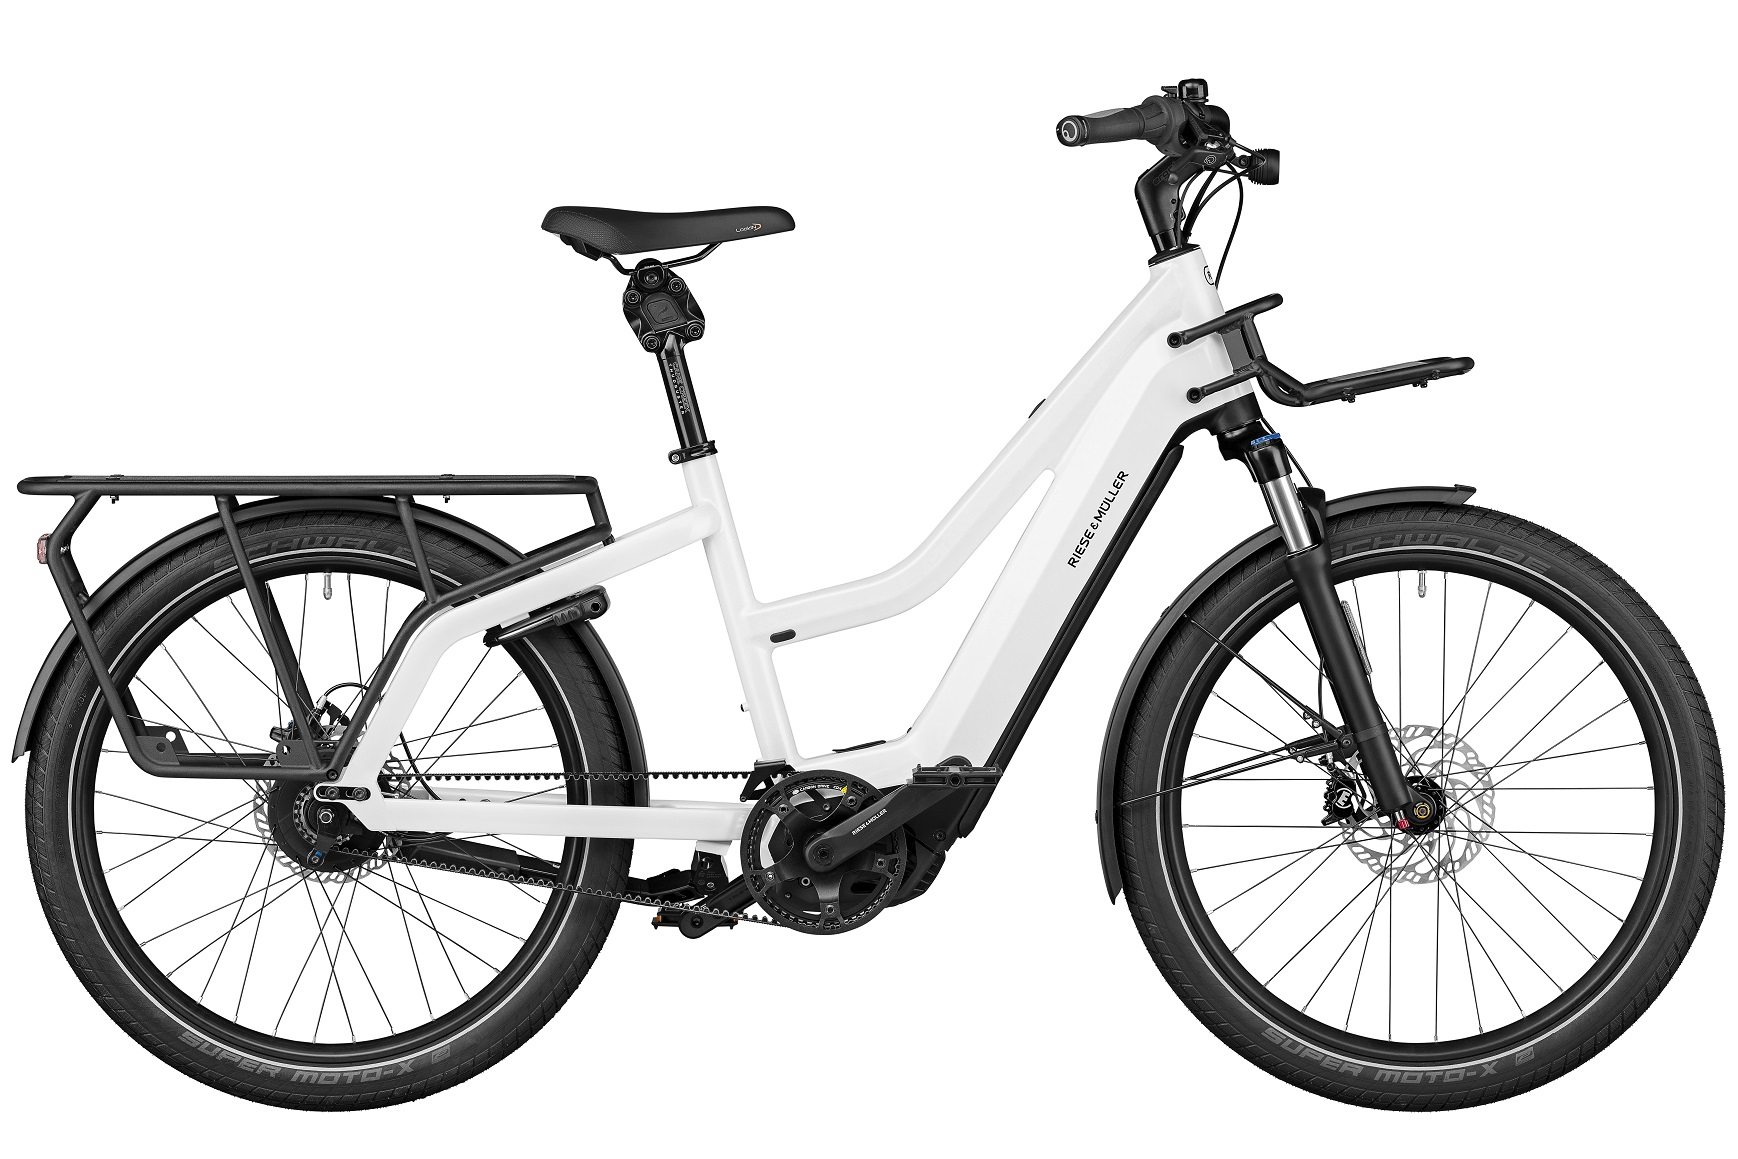 Riese&Müller R&M Mcharger GT vario mixte